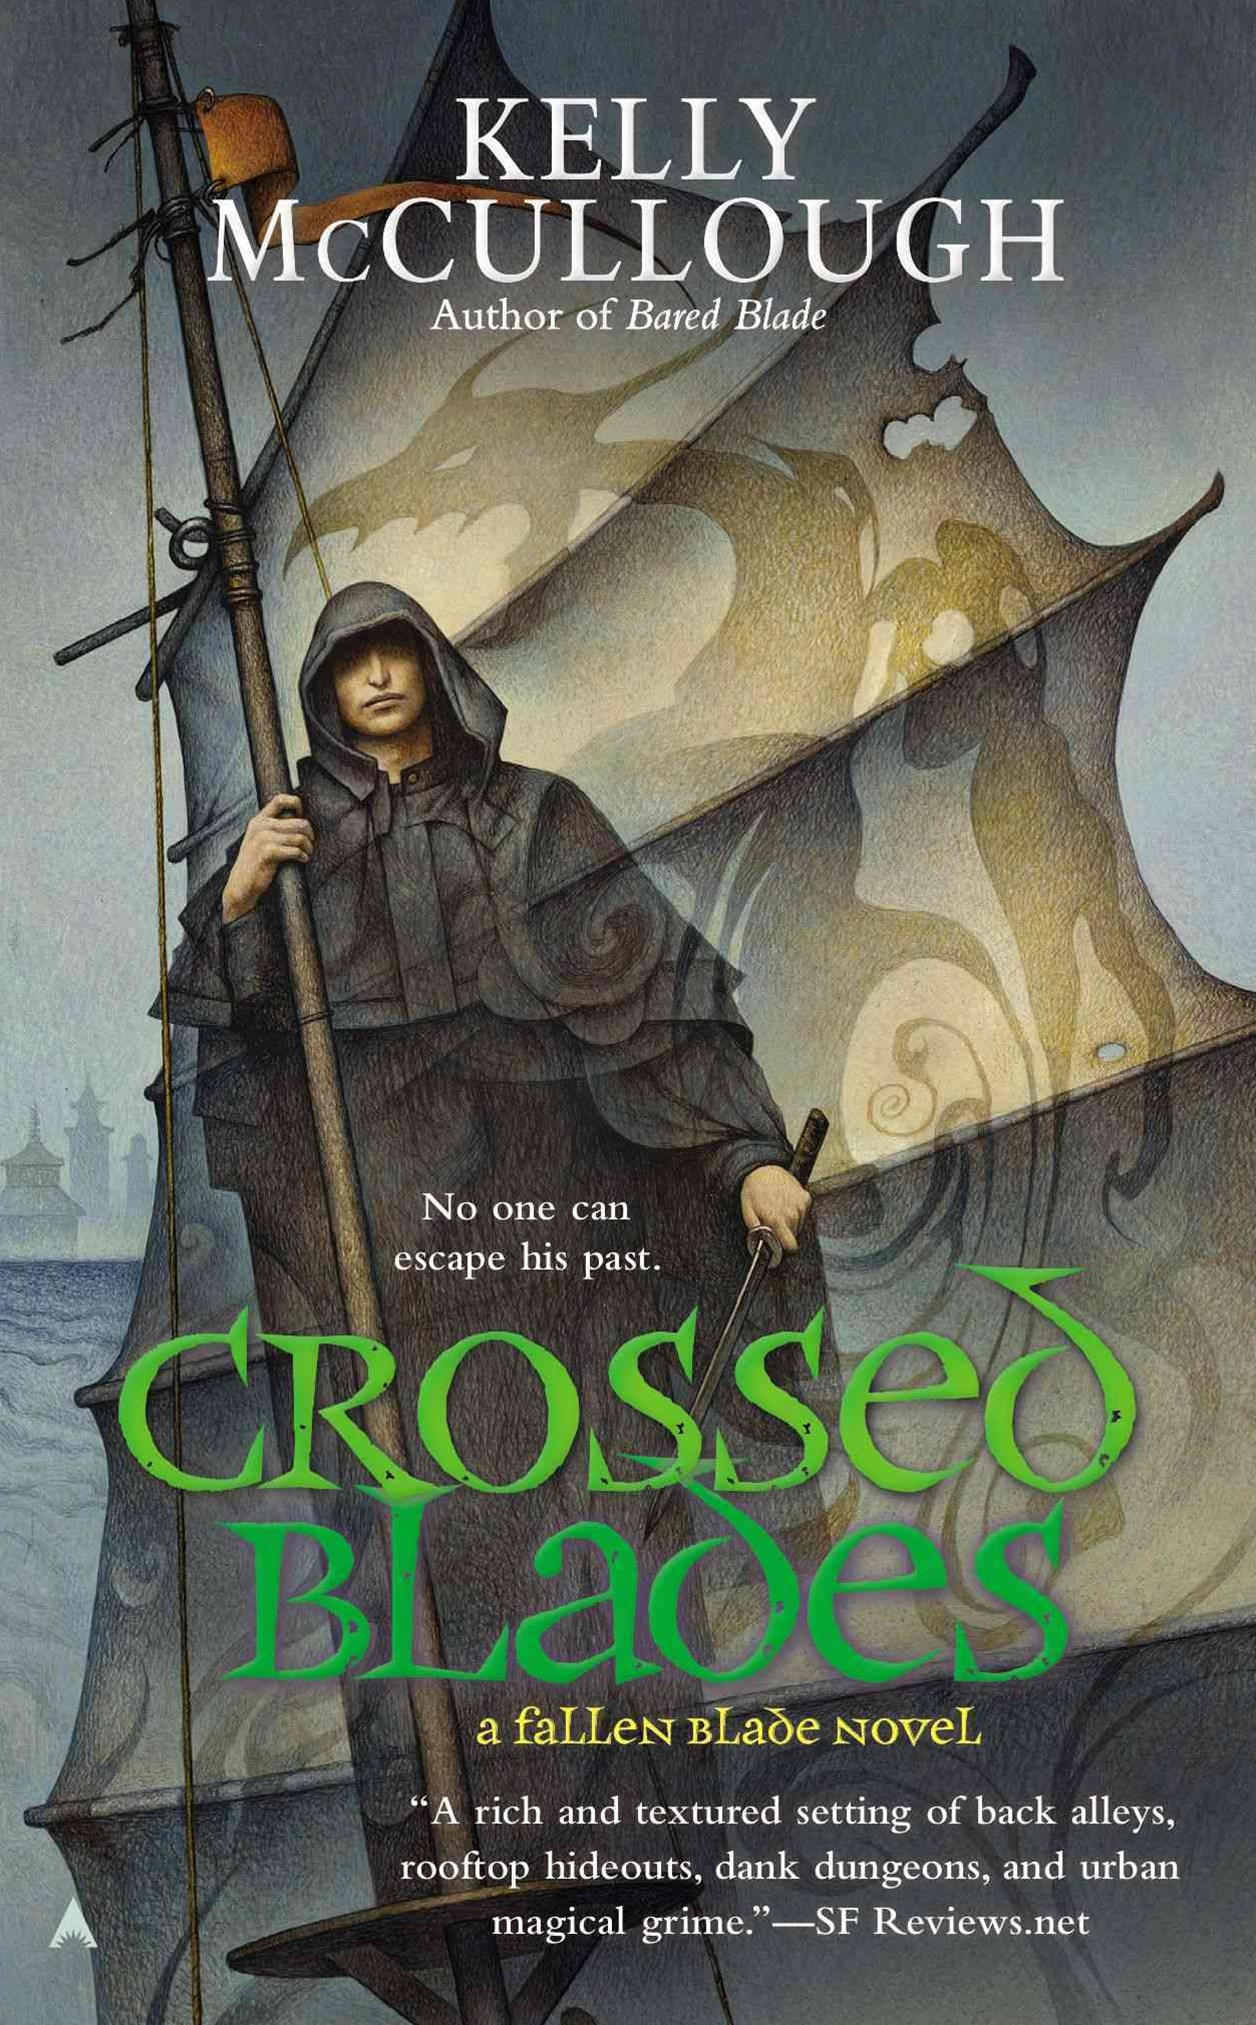 Crossed Blades: Fallen Blade Book 3